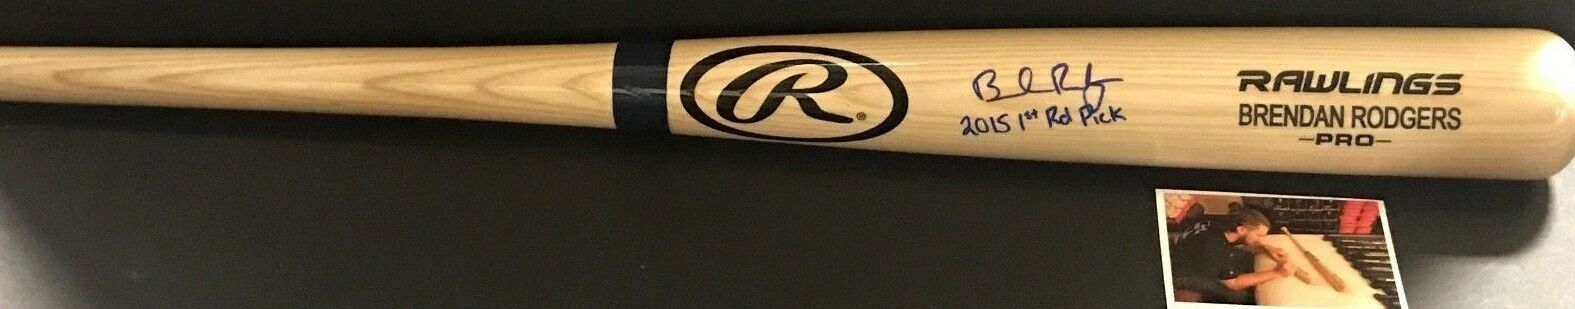 Brendan Rodgers Rockies Autographed Signed Black Full Size Bat 2015 1st Rd Pick